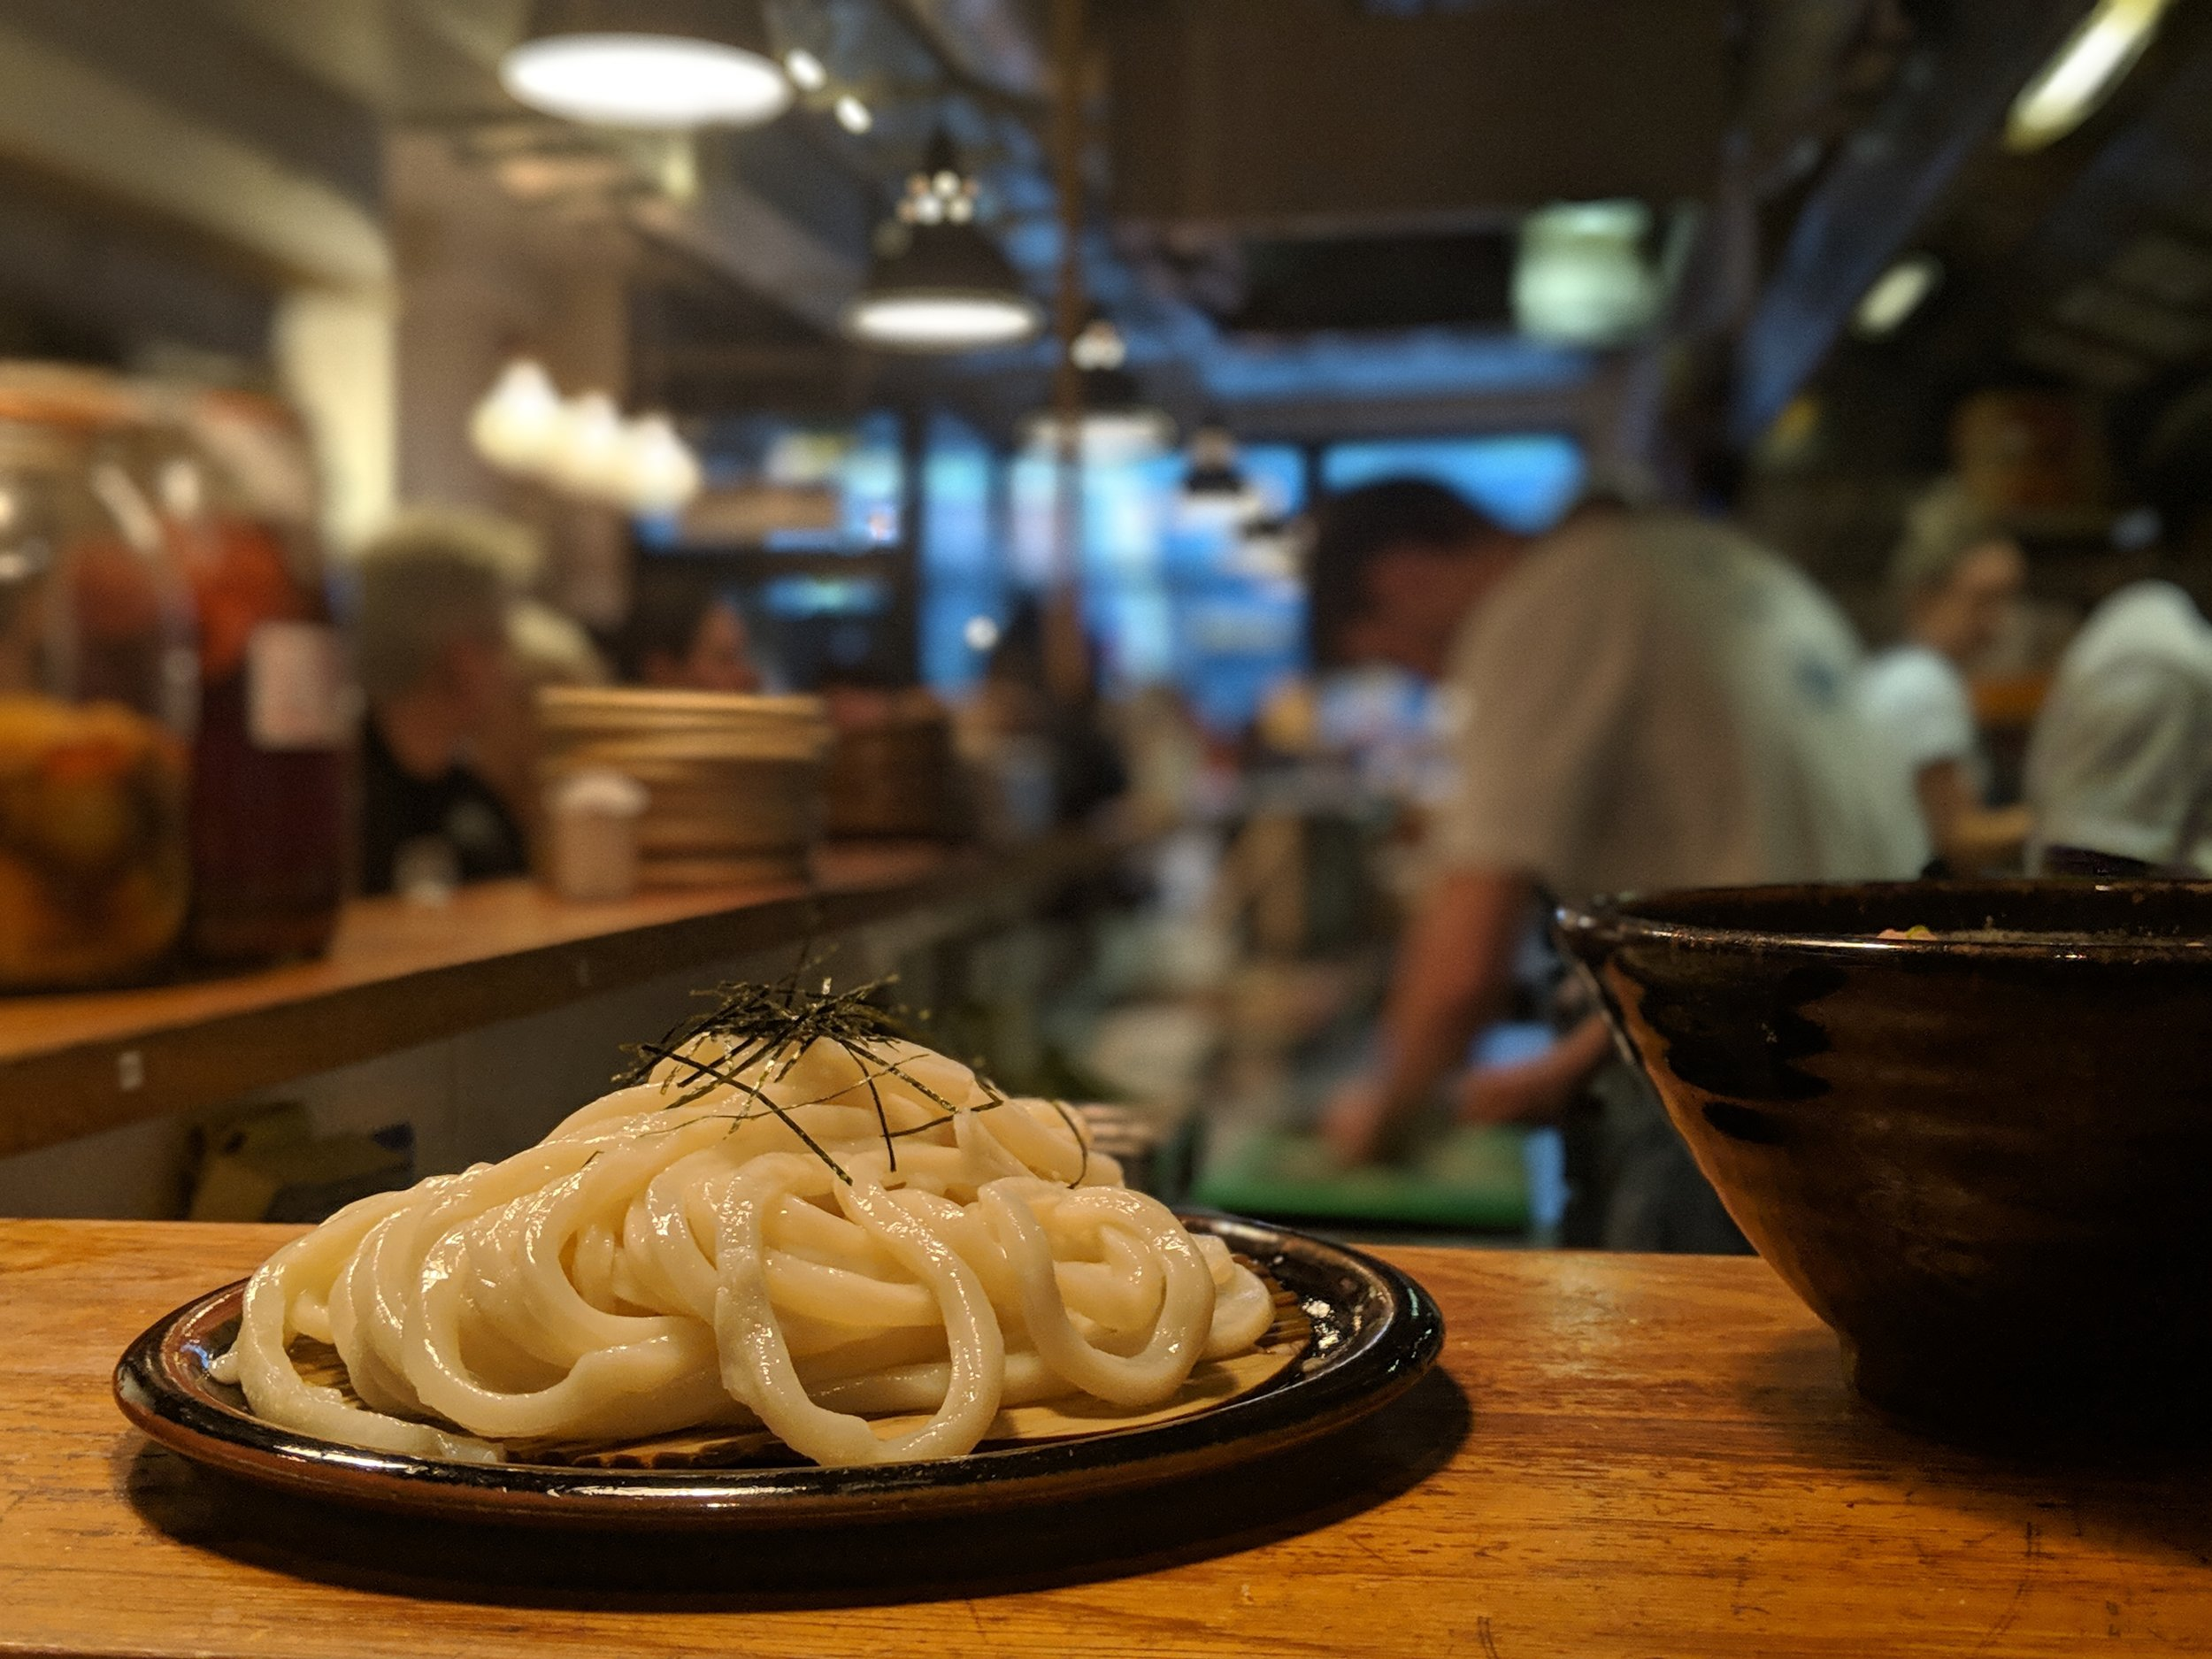 Cold udon noodles at Koya, Soho.